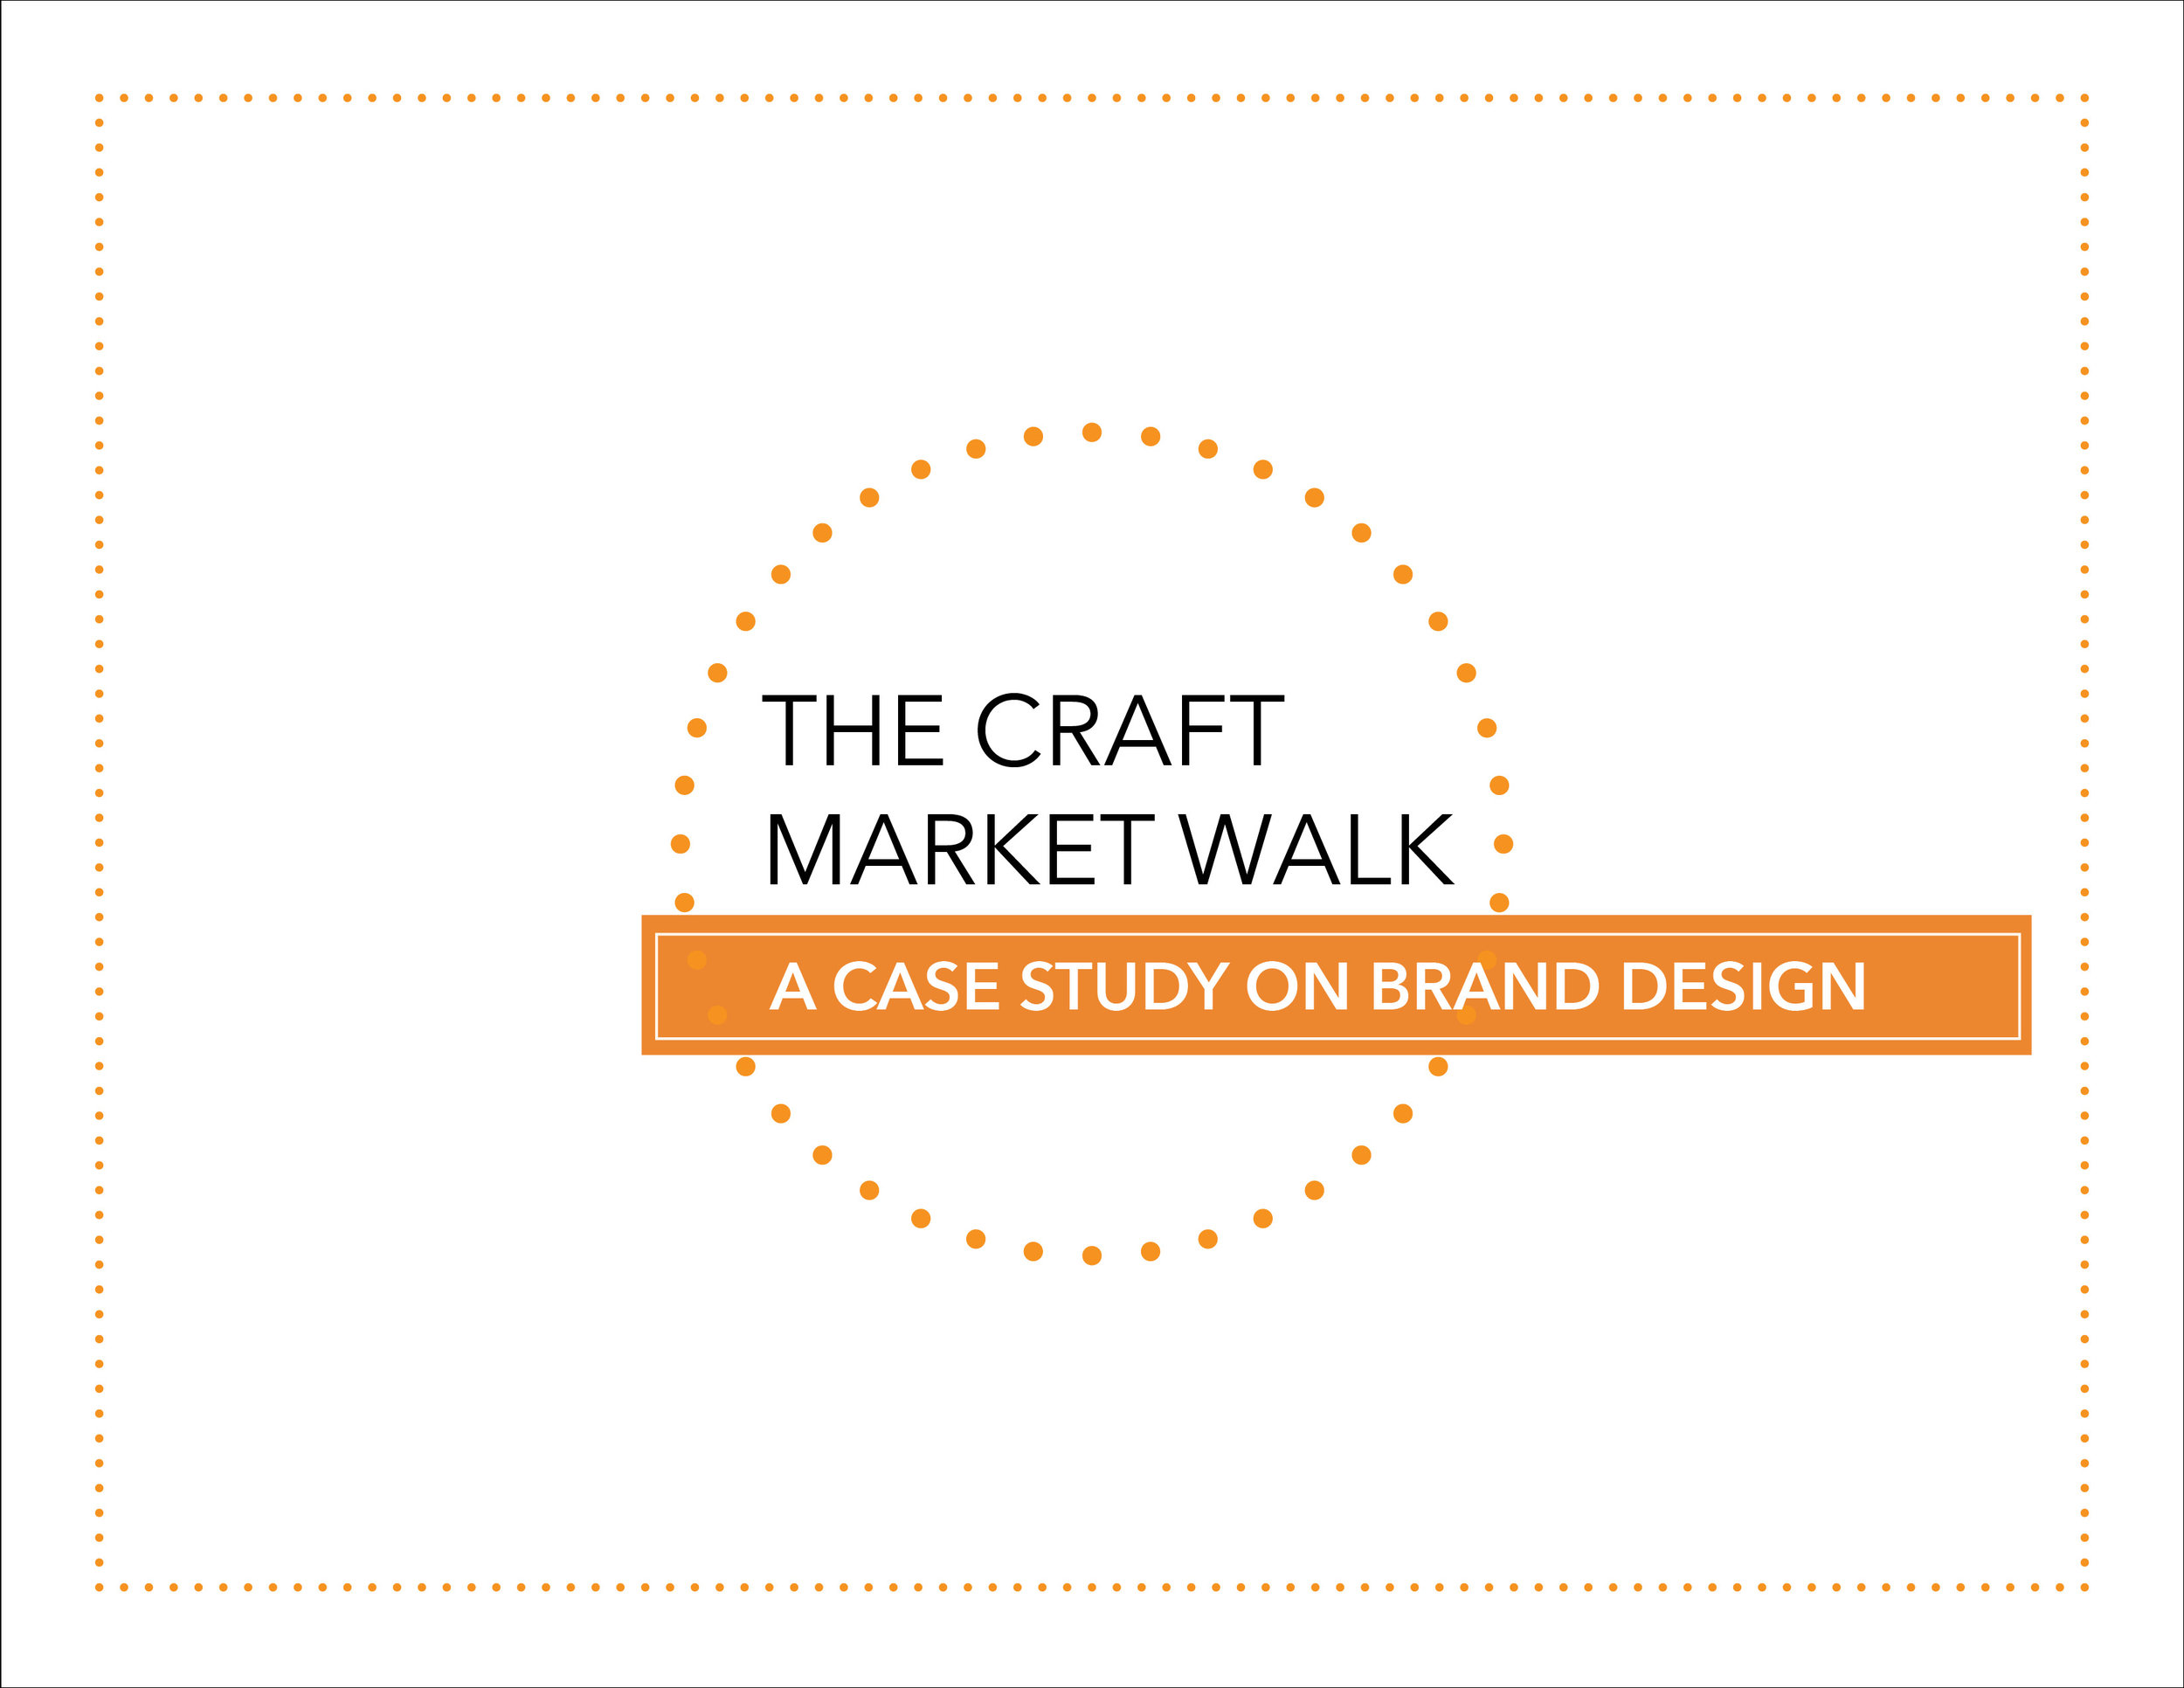 CLICK TO DOWNLOAD CASE STUDY